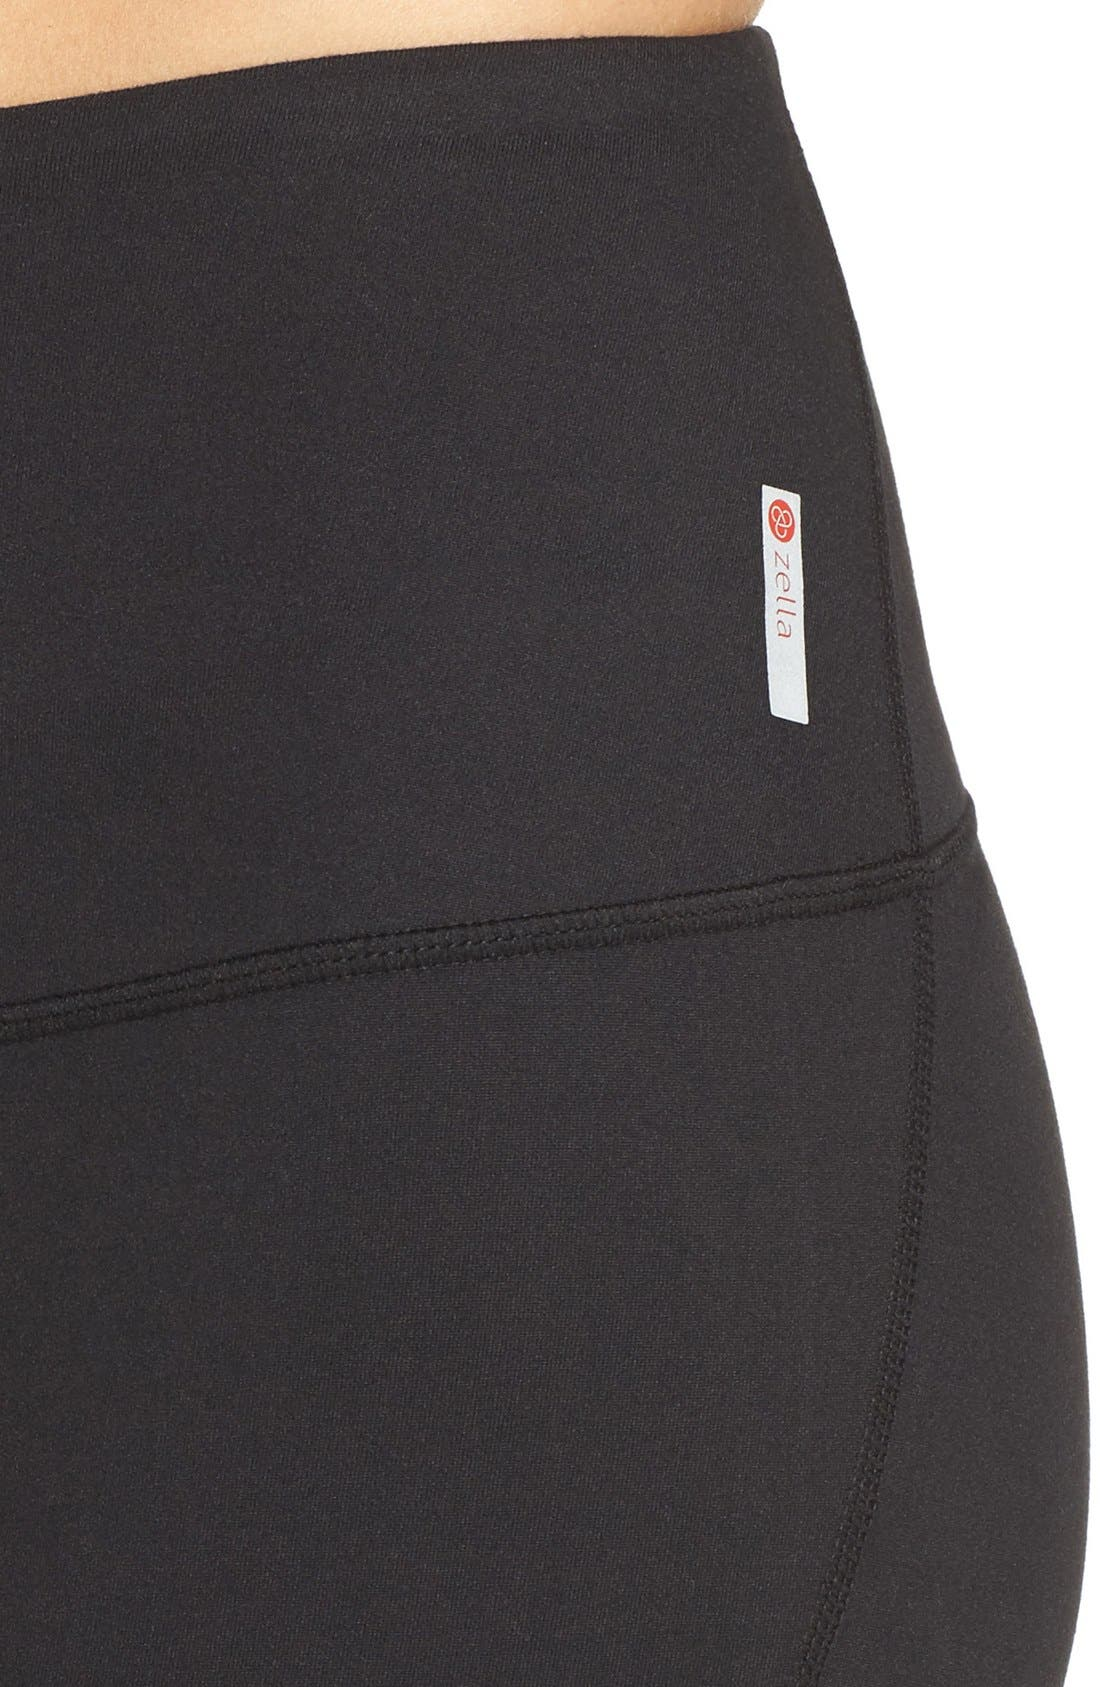 'Barely Flare Booty' High Waist Pants,                             Alternate thumbnail 6, color,